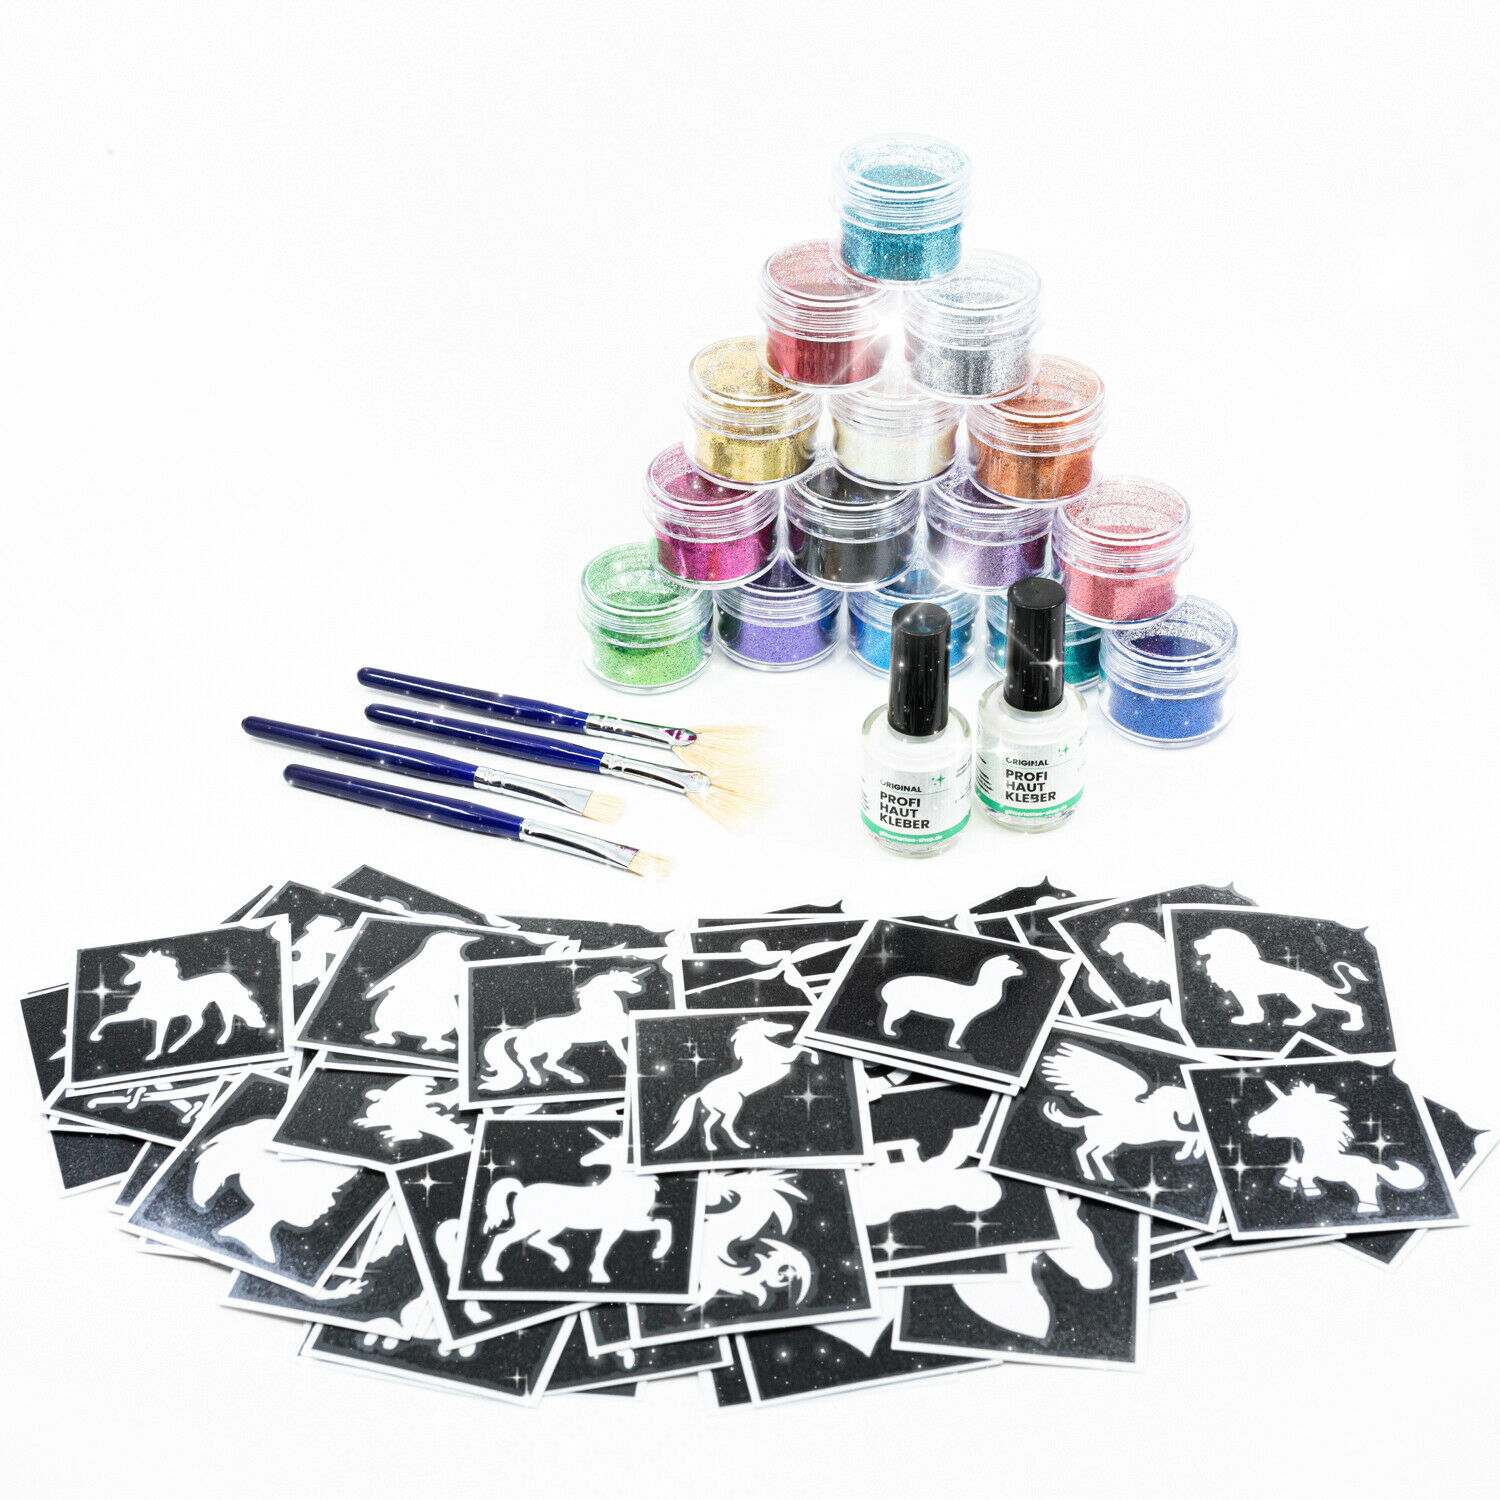 Glitzer tattoo Set 140teilig Kinderfest Set Glitter tattoo Set Geschenkeset